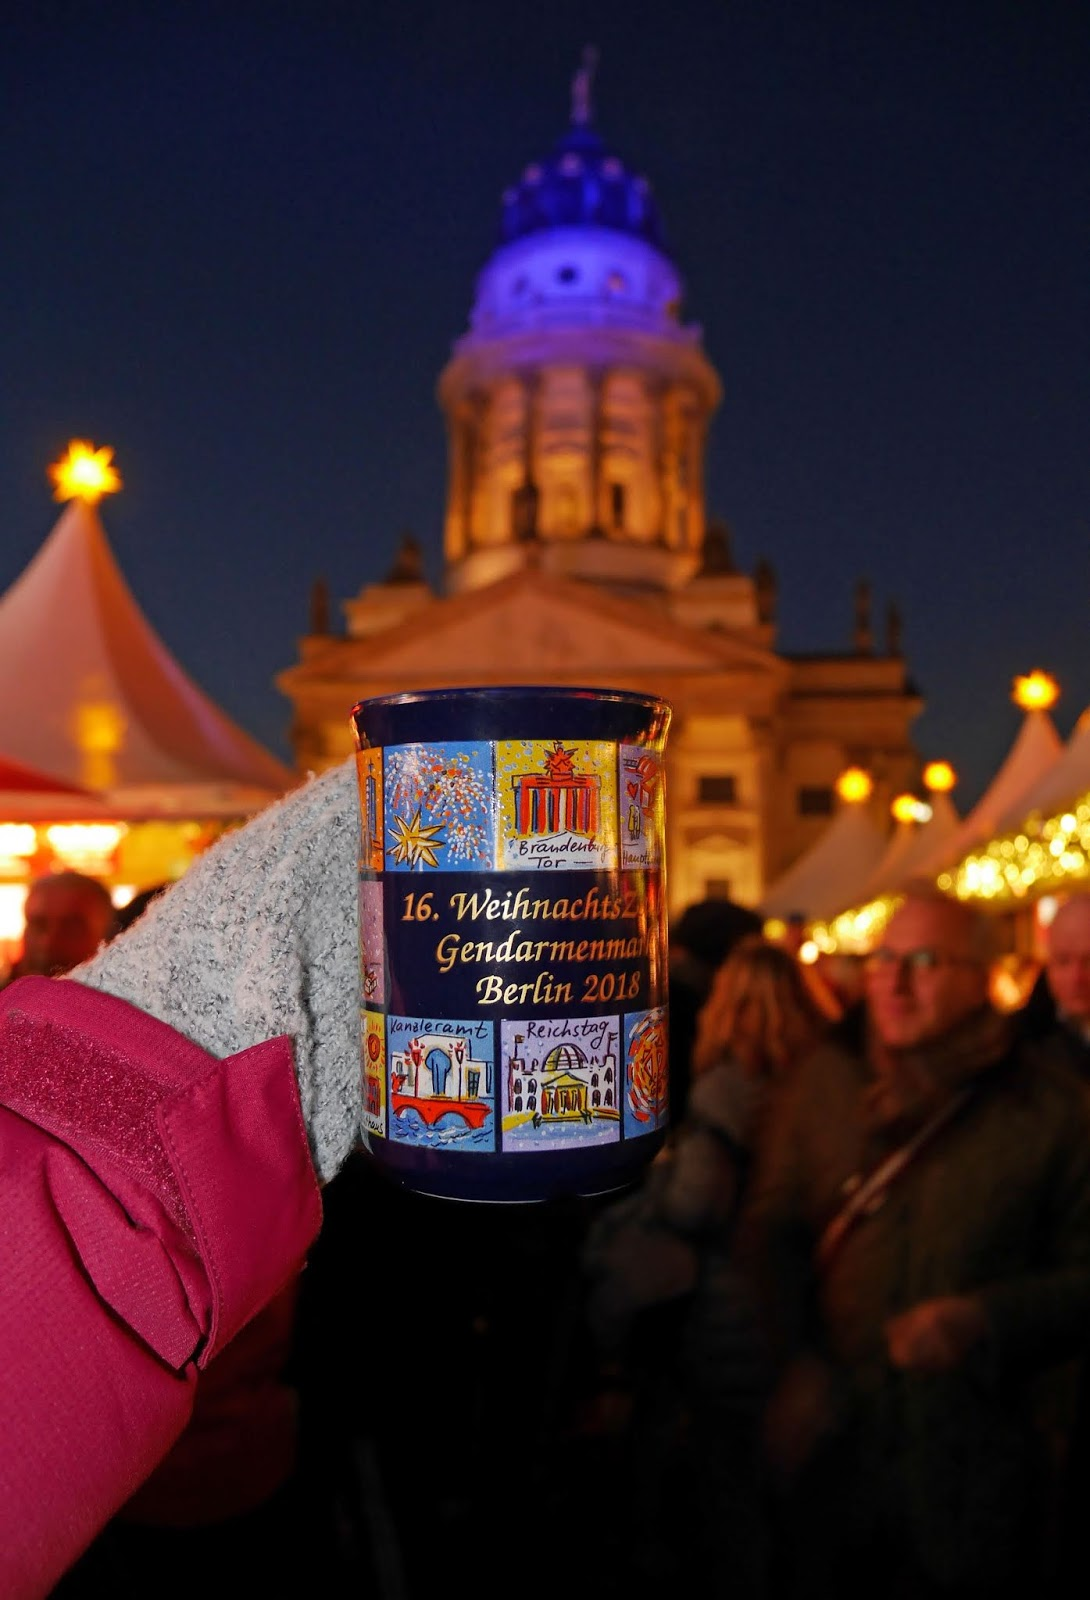 Drinking a non-alcoholic festive fruit punch at the Gendarmenmarkt Christmas Market in Berlin